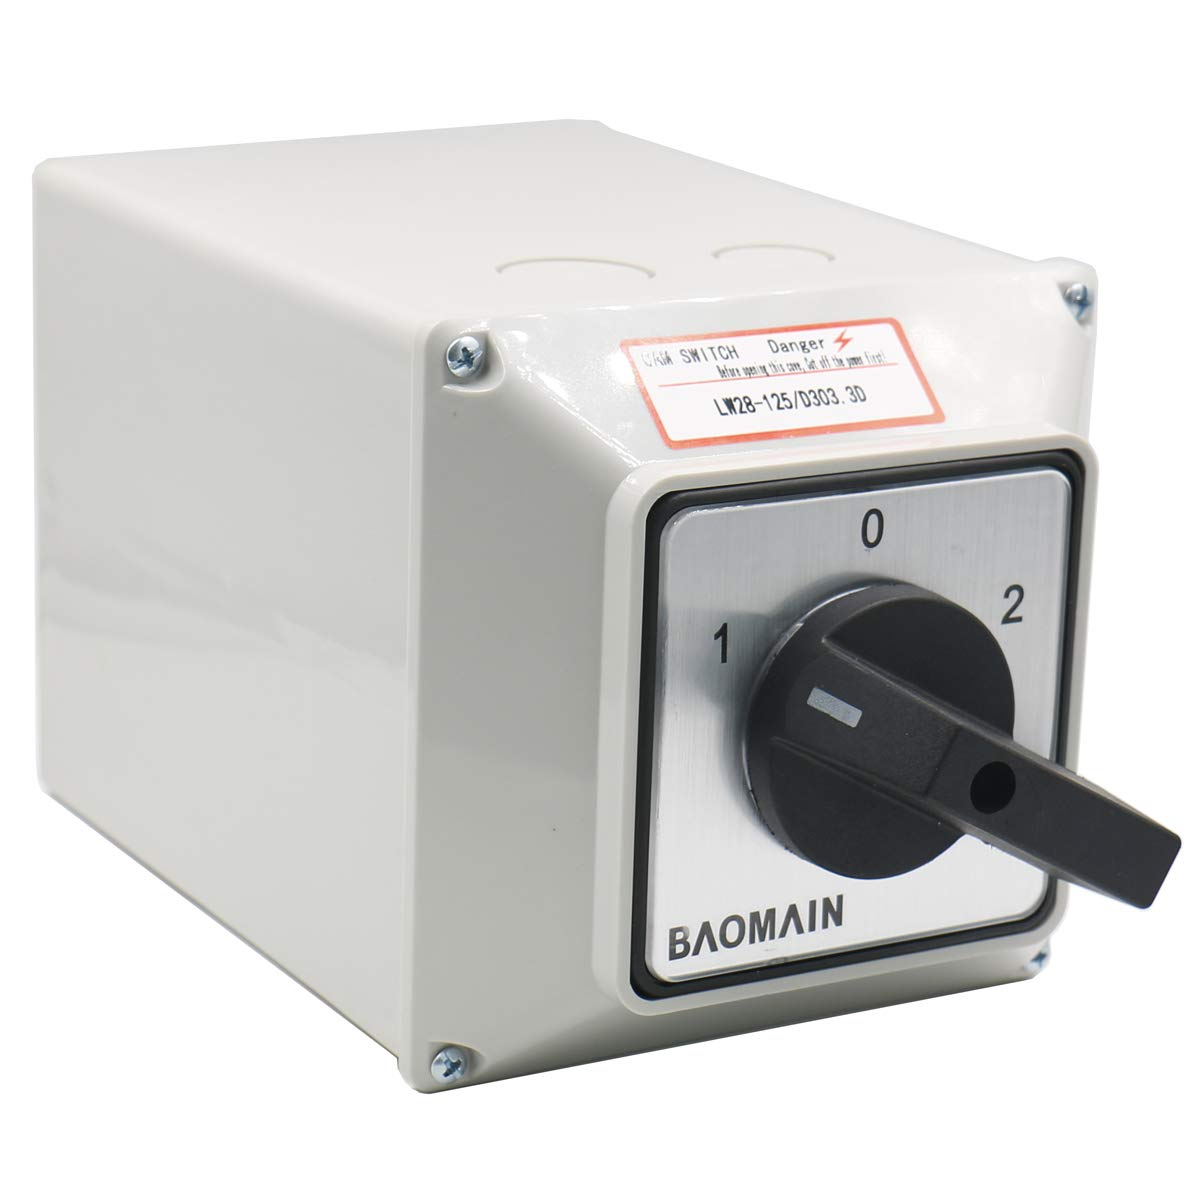 Baomain Universal Rotary Changeover Switch LW28-125 Max 69% OFF with D303.3 New life